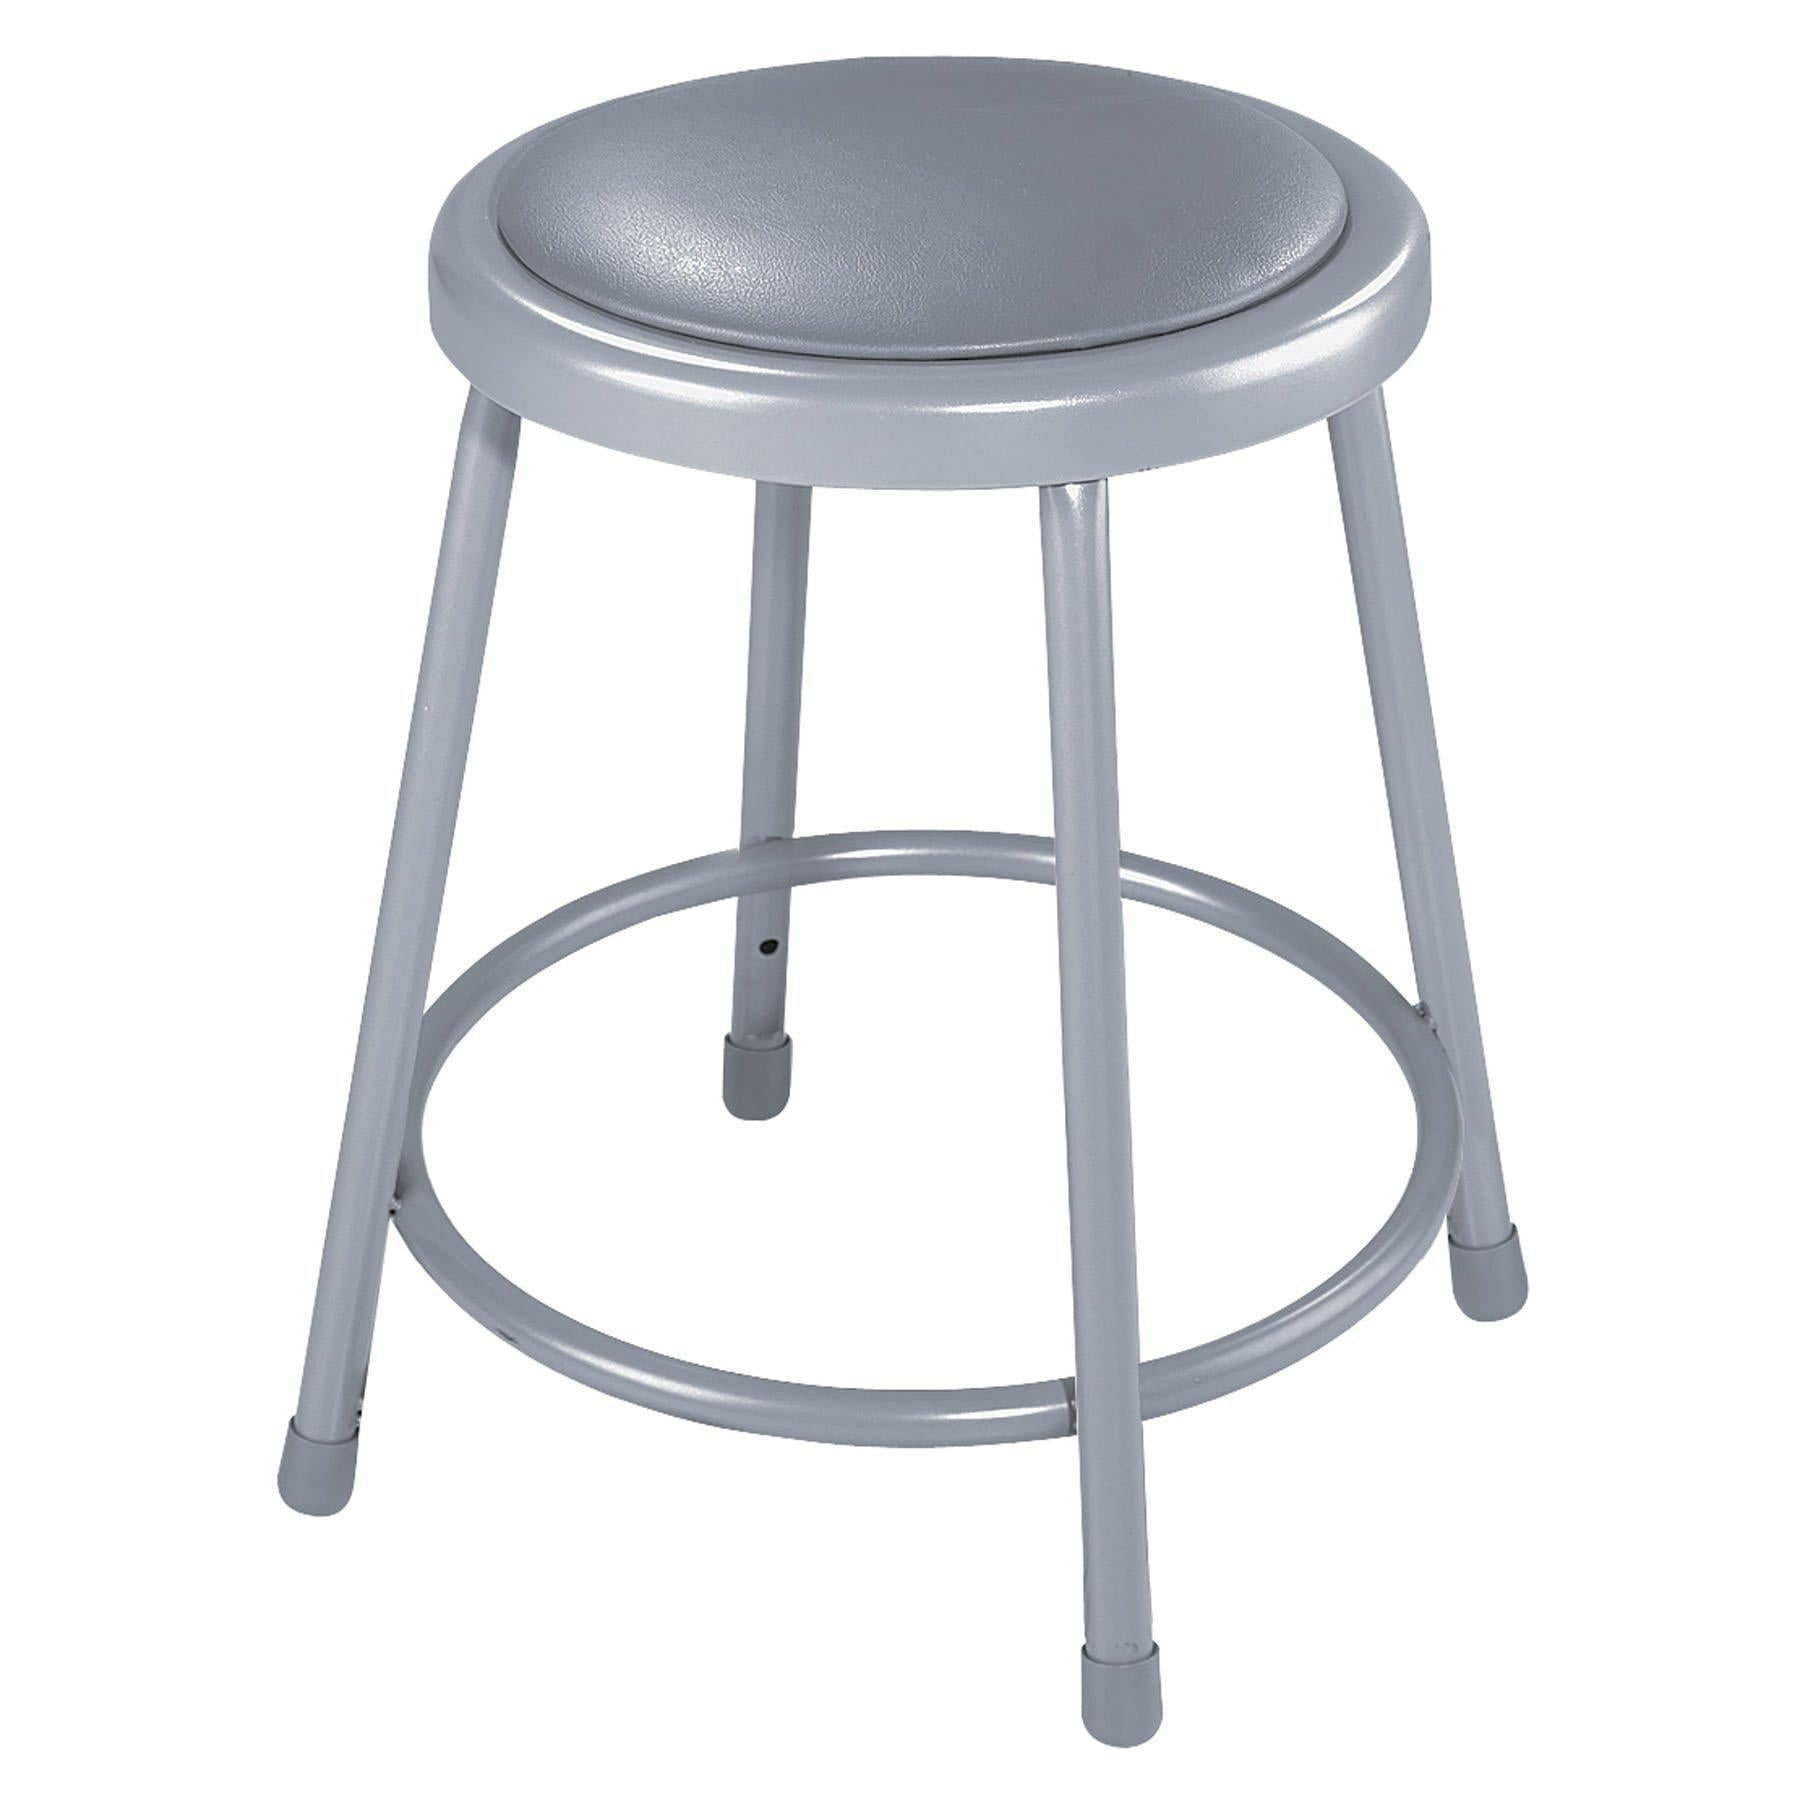 Heavy Duty Vinyl Padded Steel Stool, Grey